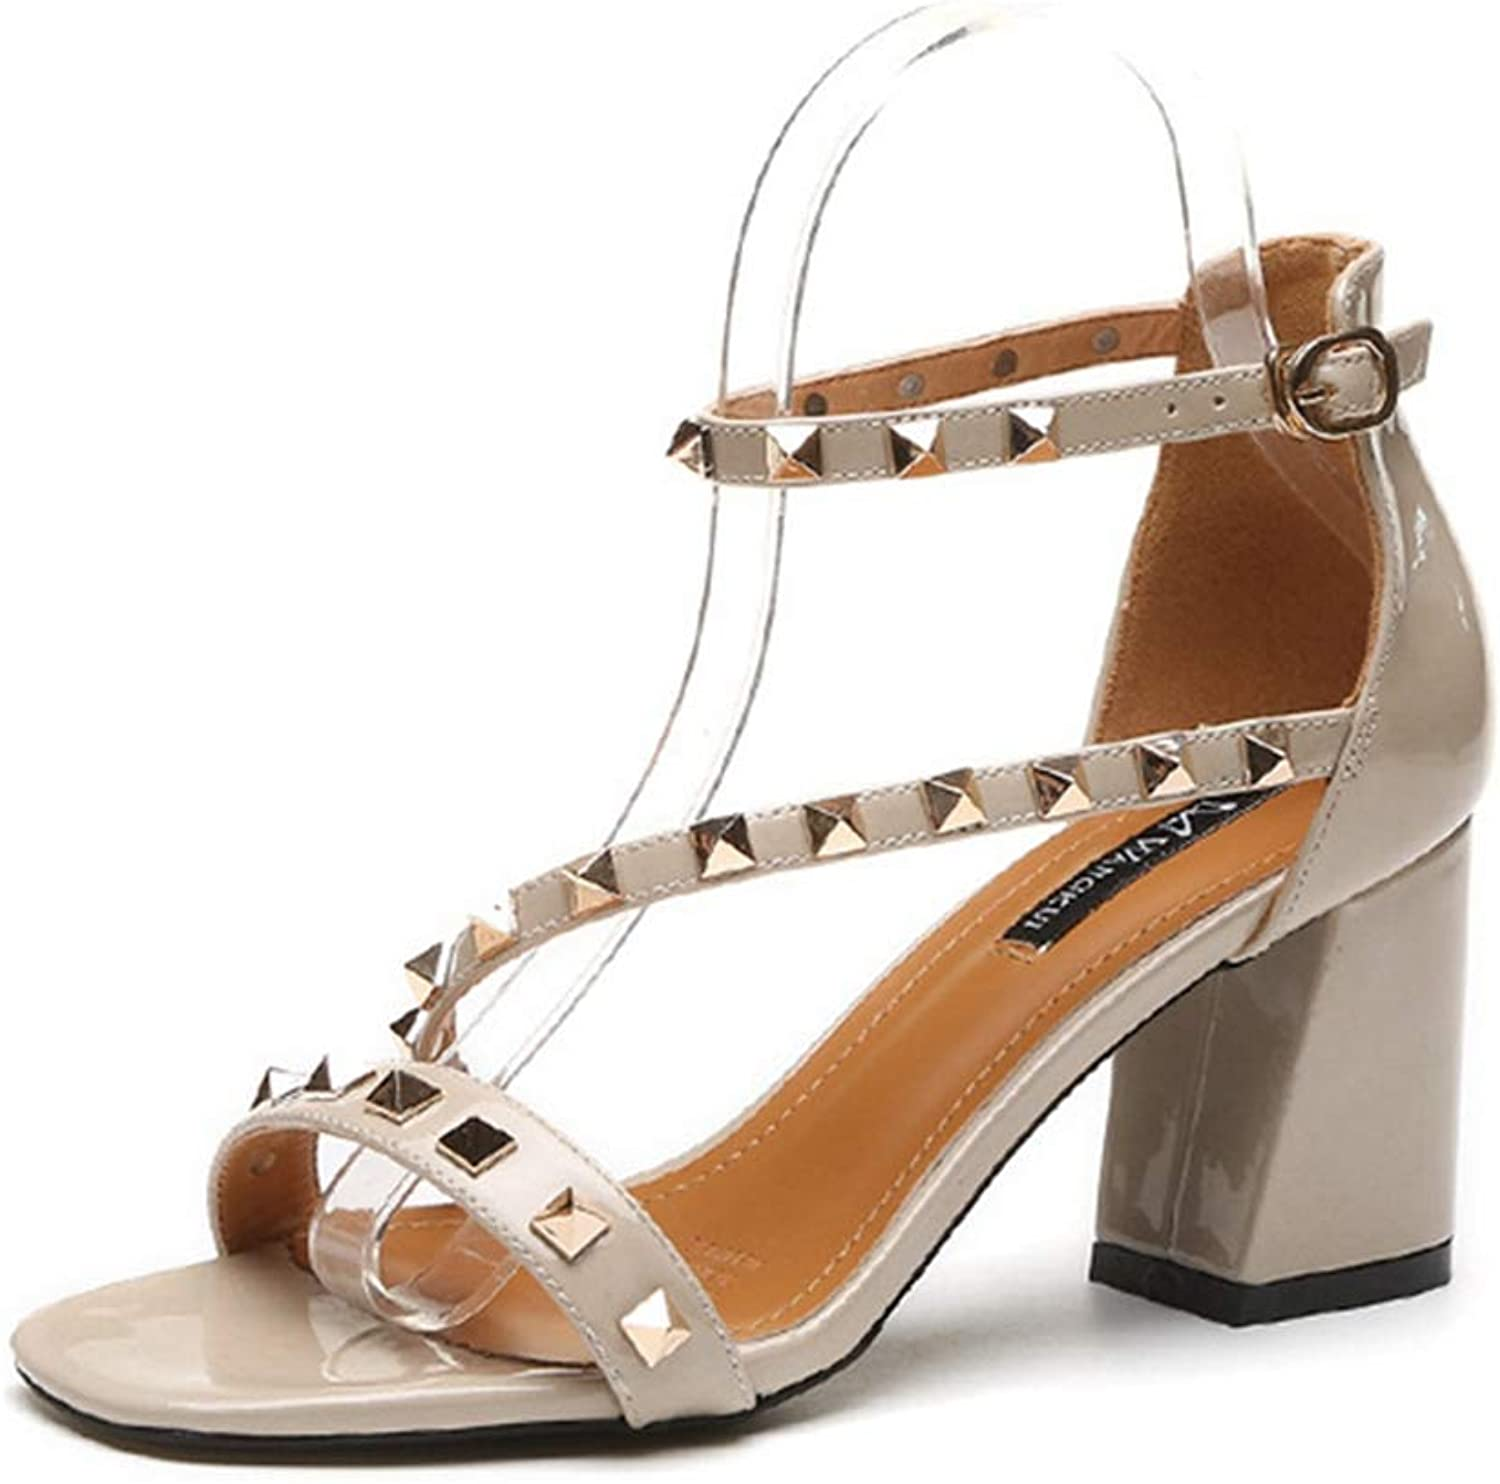 GIY Women's Rivets Strappy Ankle Strap Sandals Open Toe Party Simple Classic Pump Chunky Block High Heel Sandals